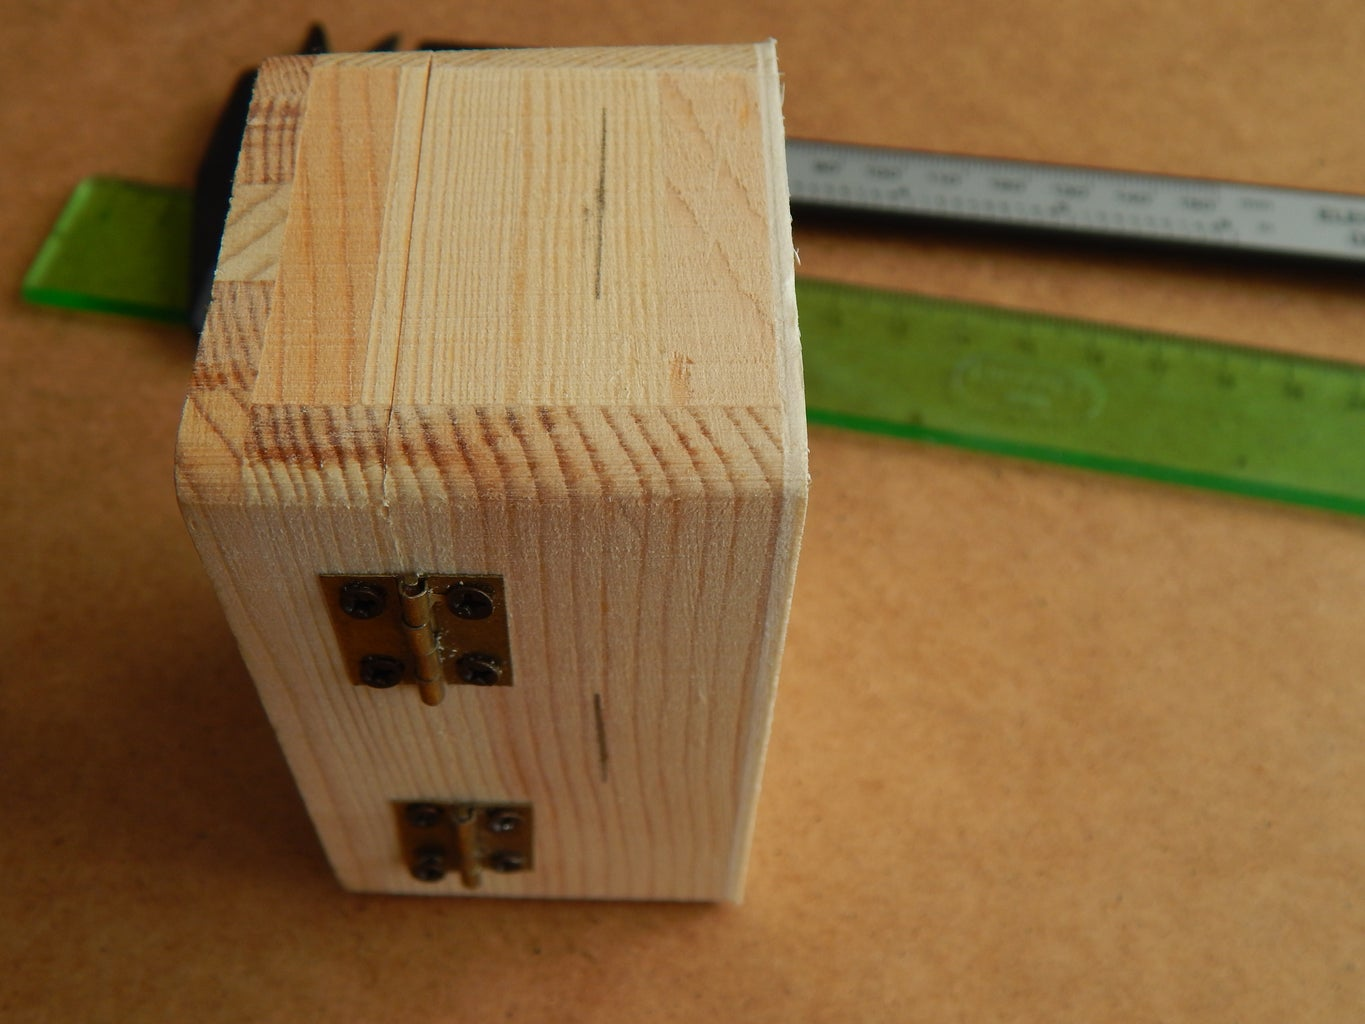 Measuring and Marking the Box